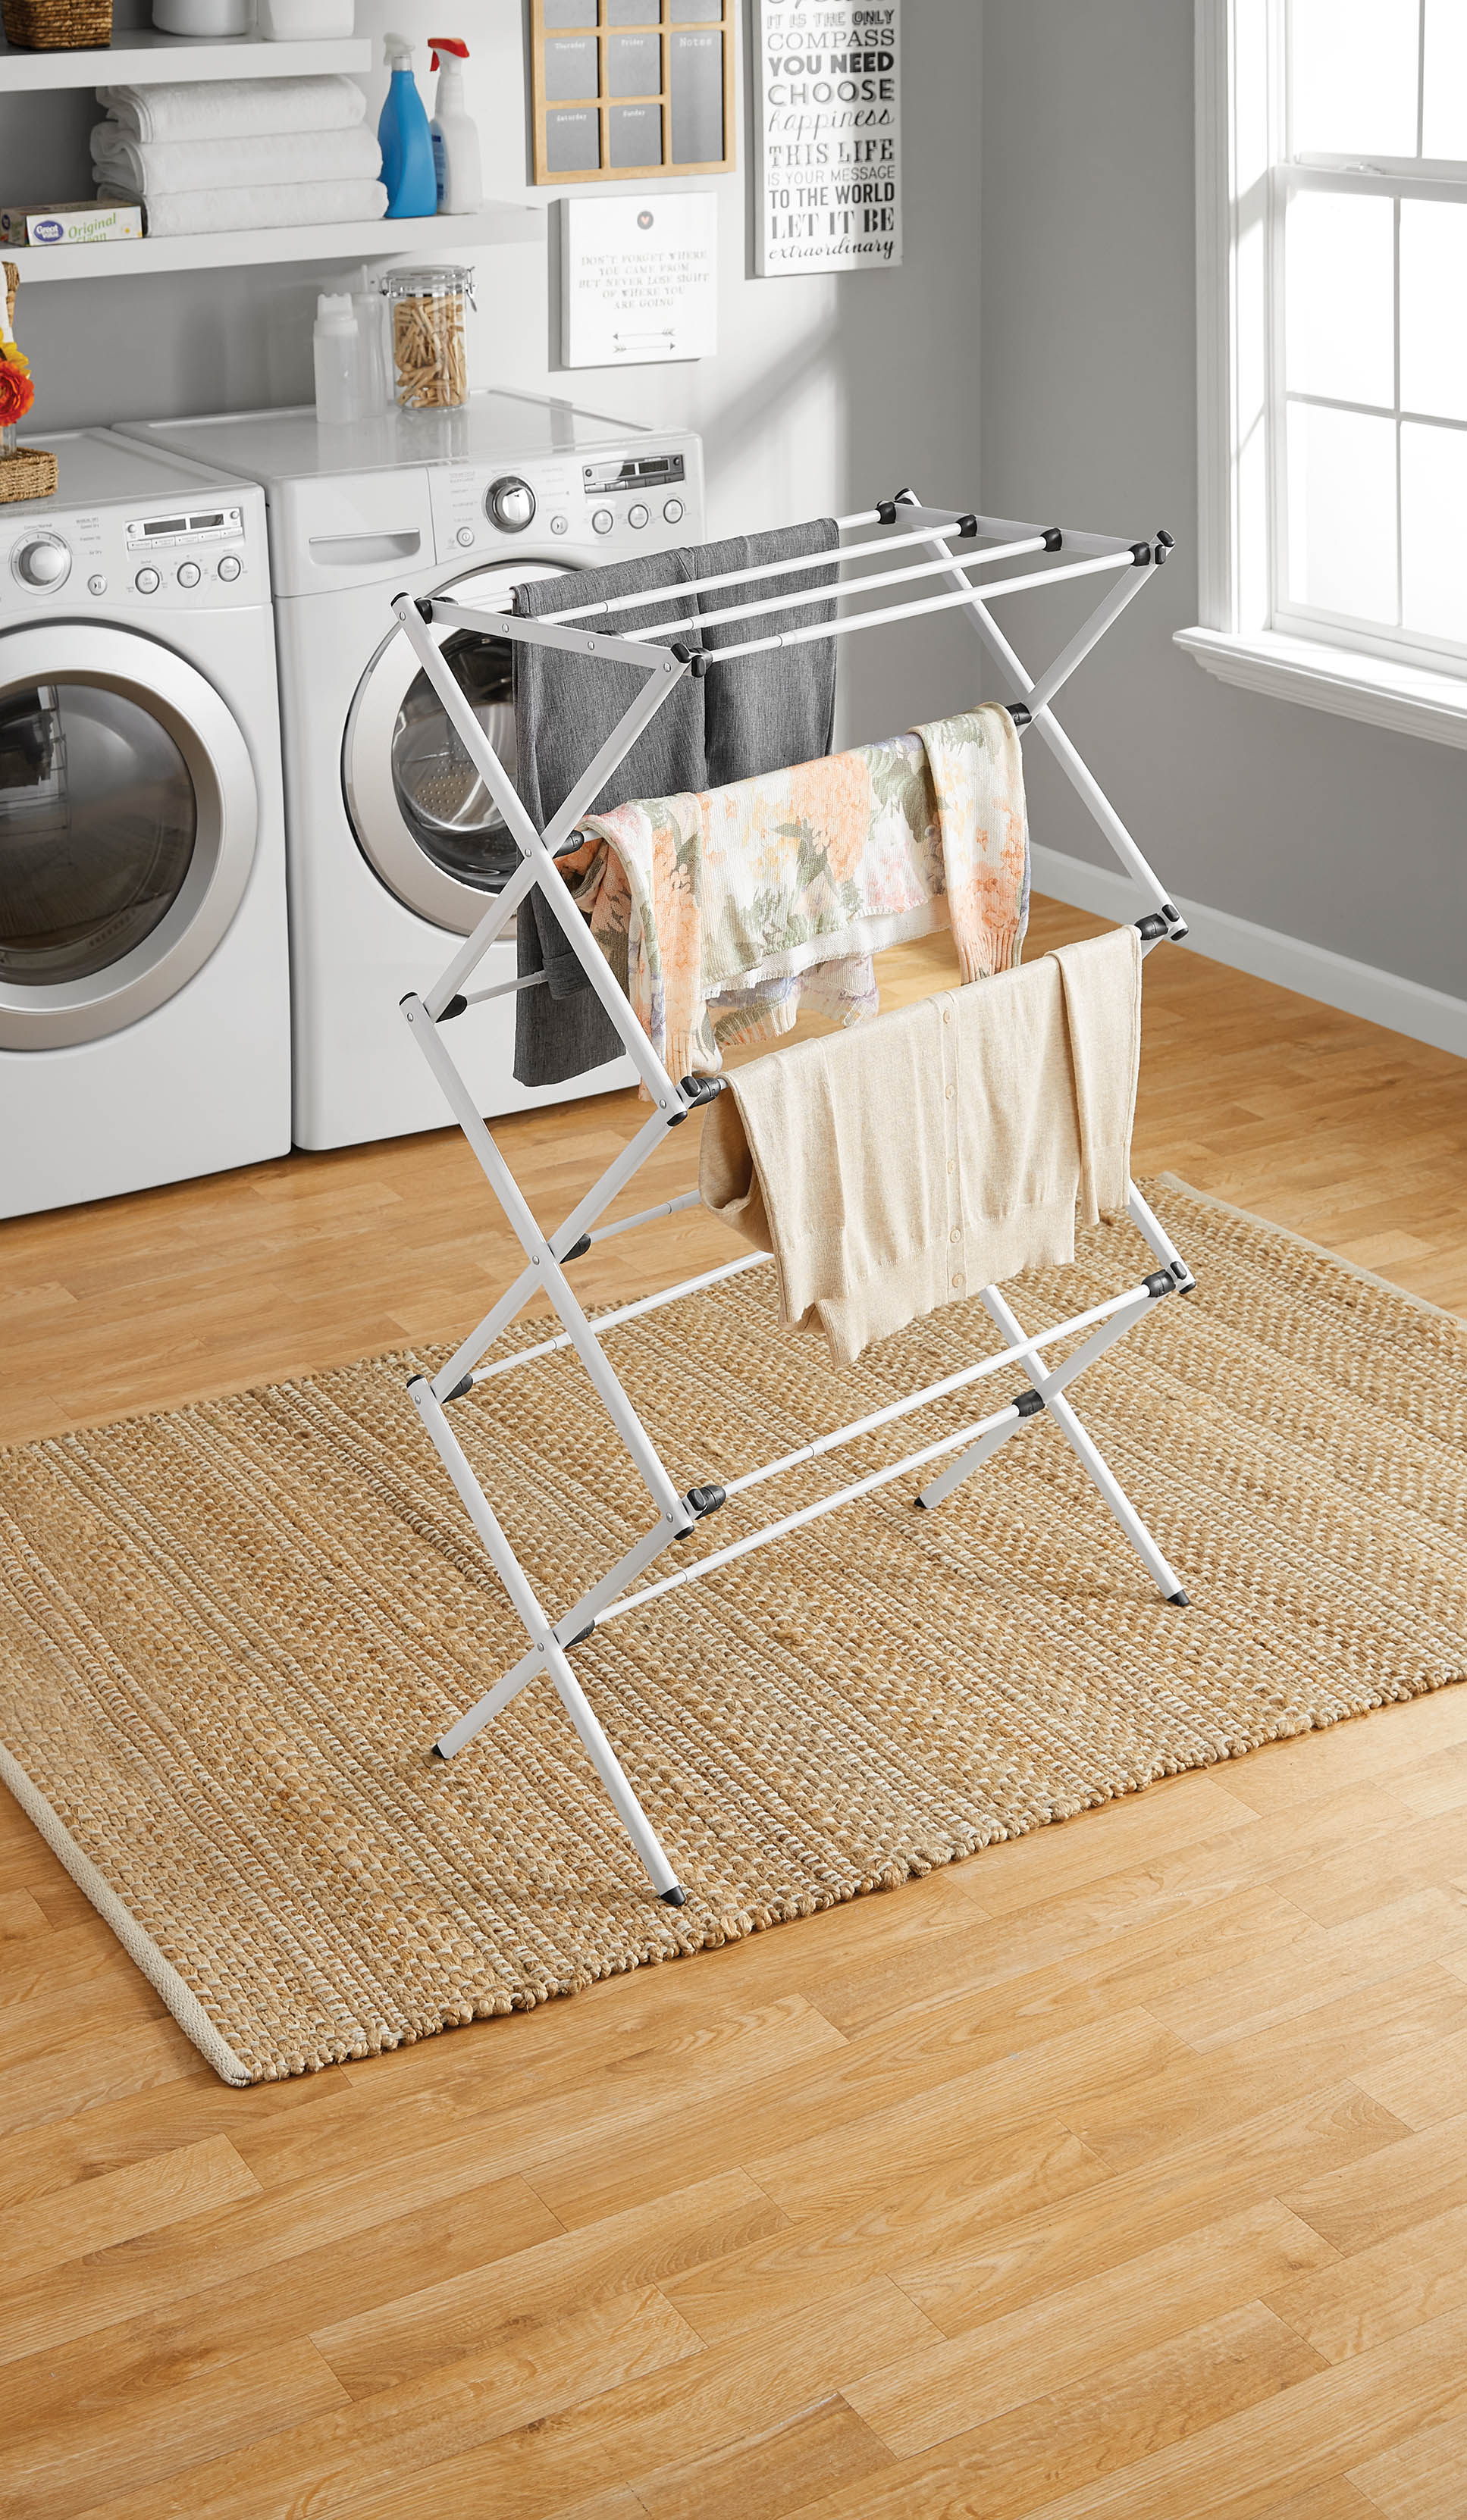 polder expandable laundry drying rack 50 8 ft of drying space folds to 2 17 in